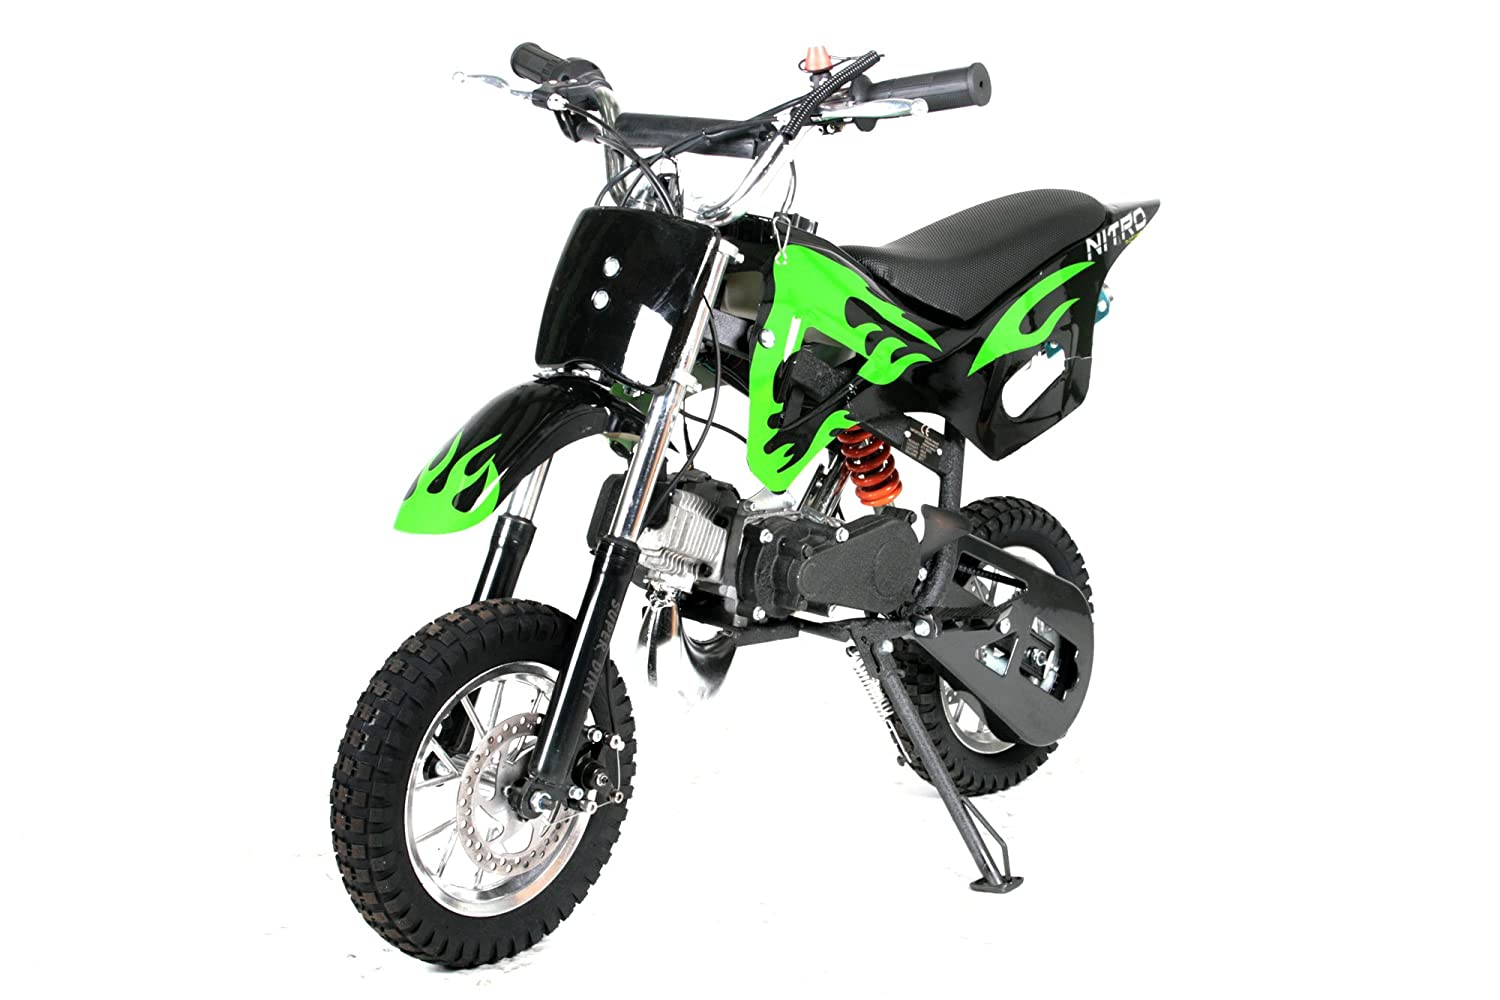 pocketbike z ndkerze bm6a pocket bike dirt bike mini. Black Bedroom Furniture Sets. Home Design Ideas